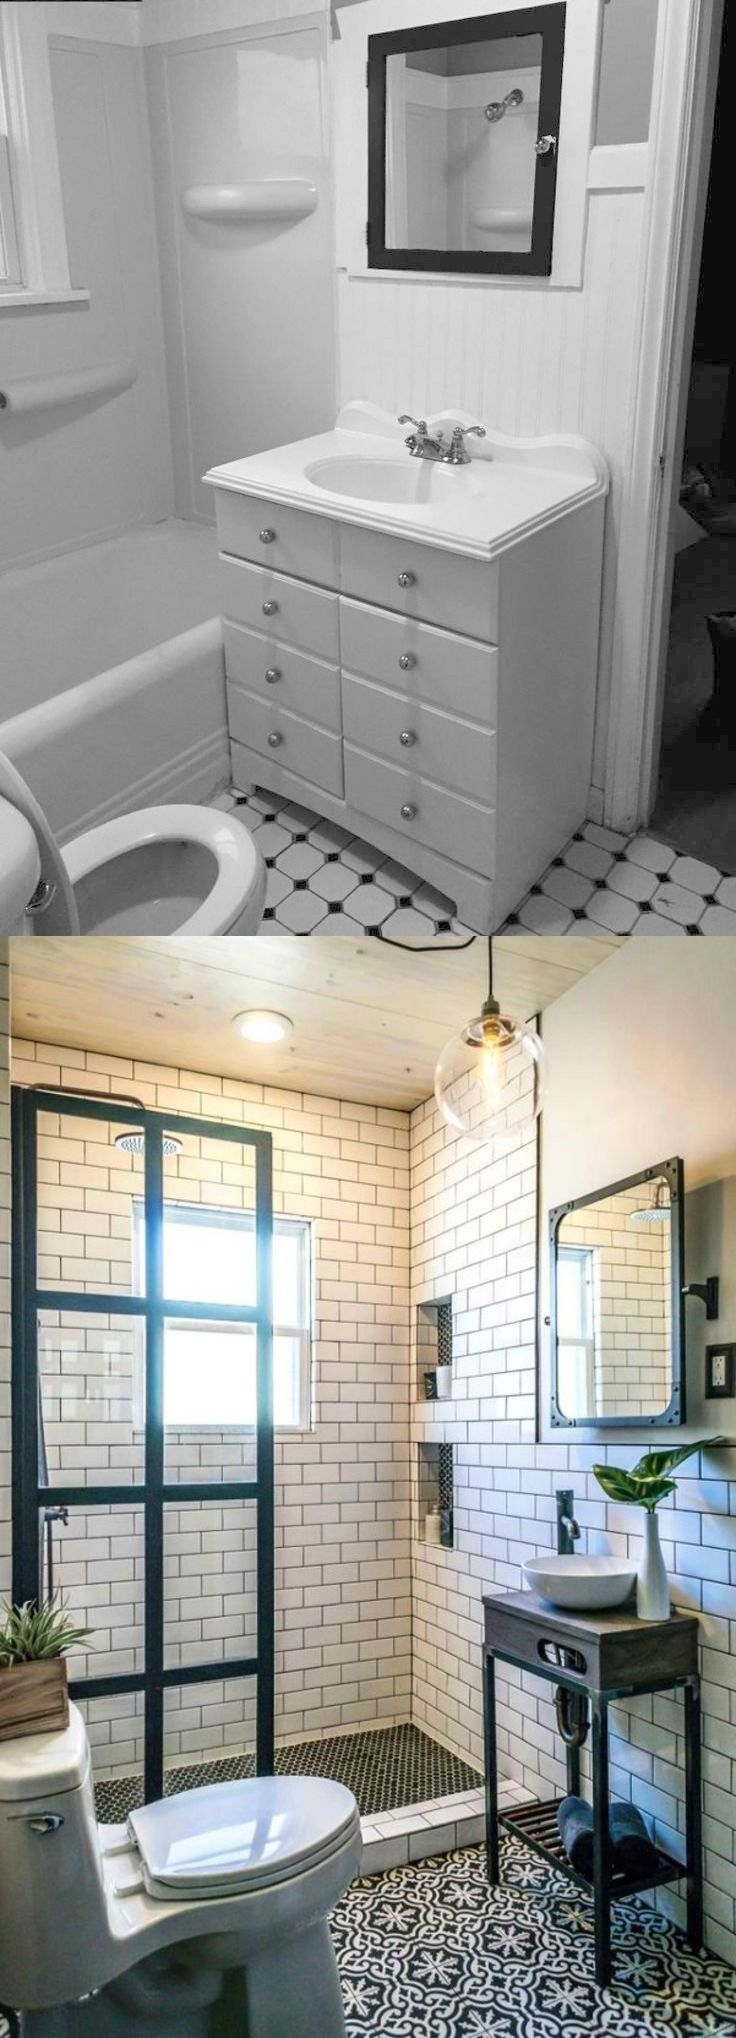 54 best bathroom renovation images on pinterest | bathroom